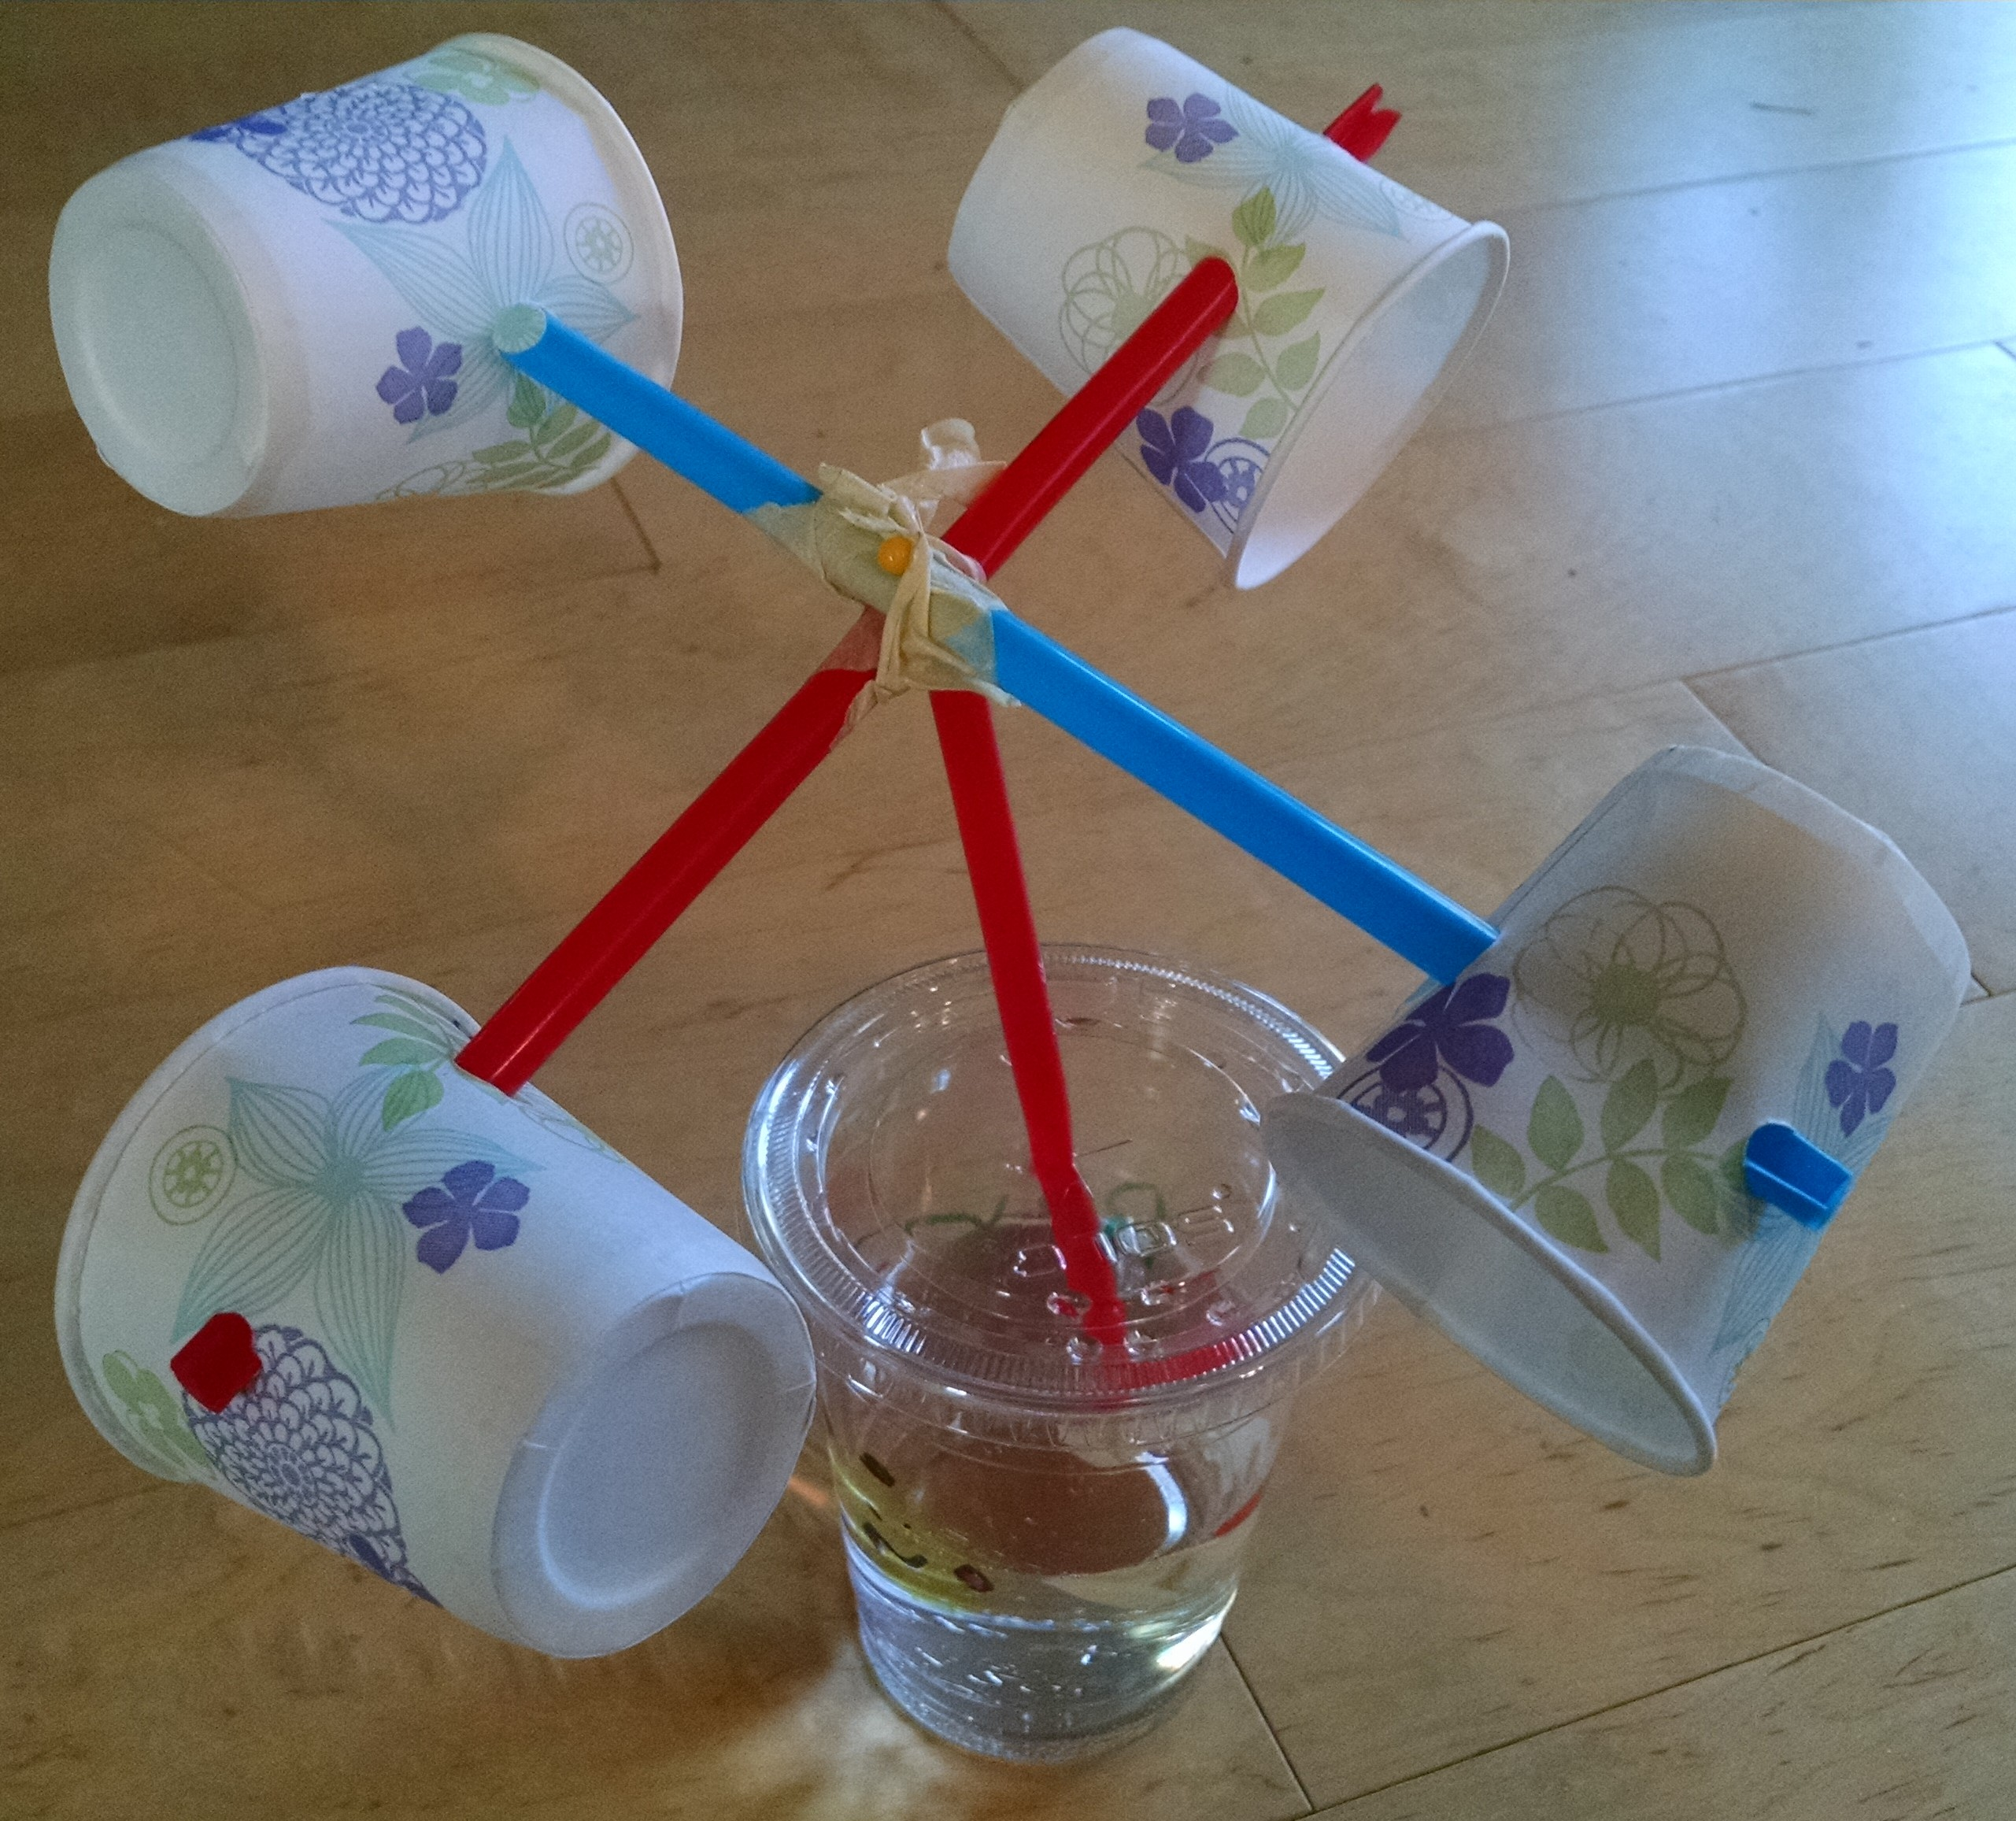 Diy Weather Vane And Anemometer Inventors Of Tomorrow